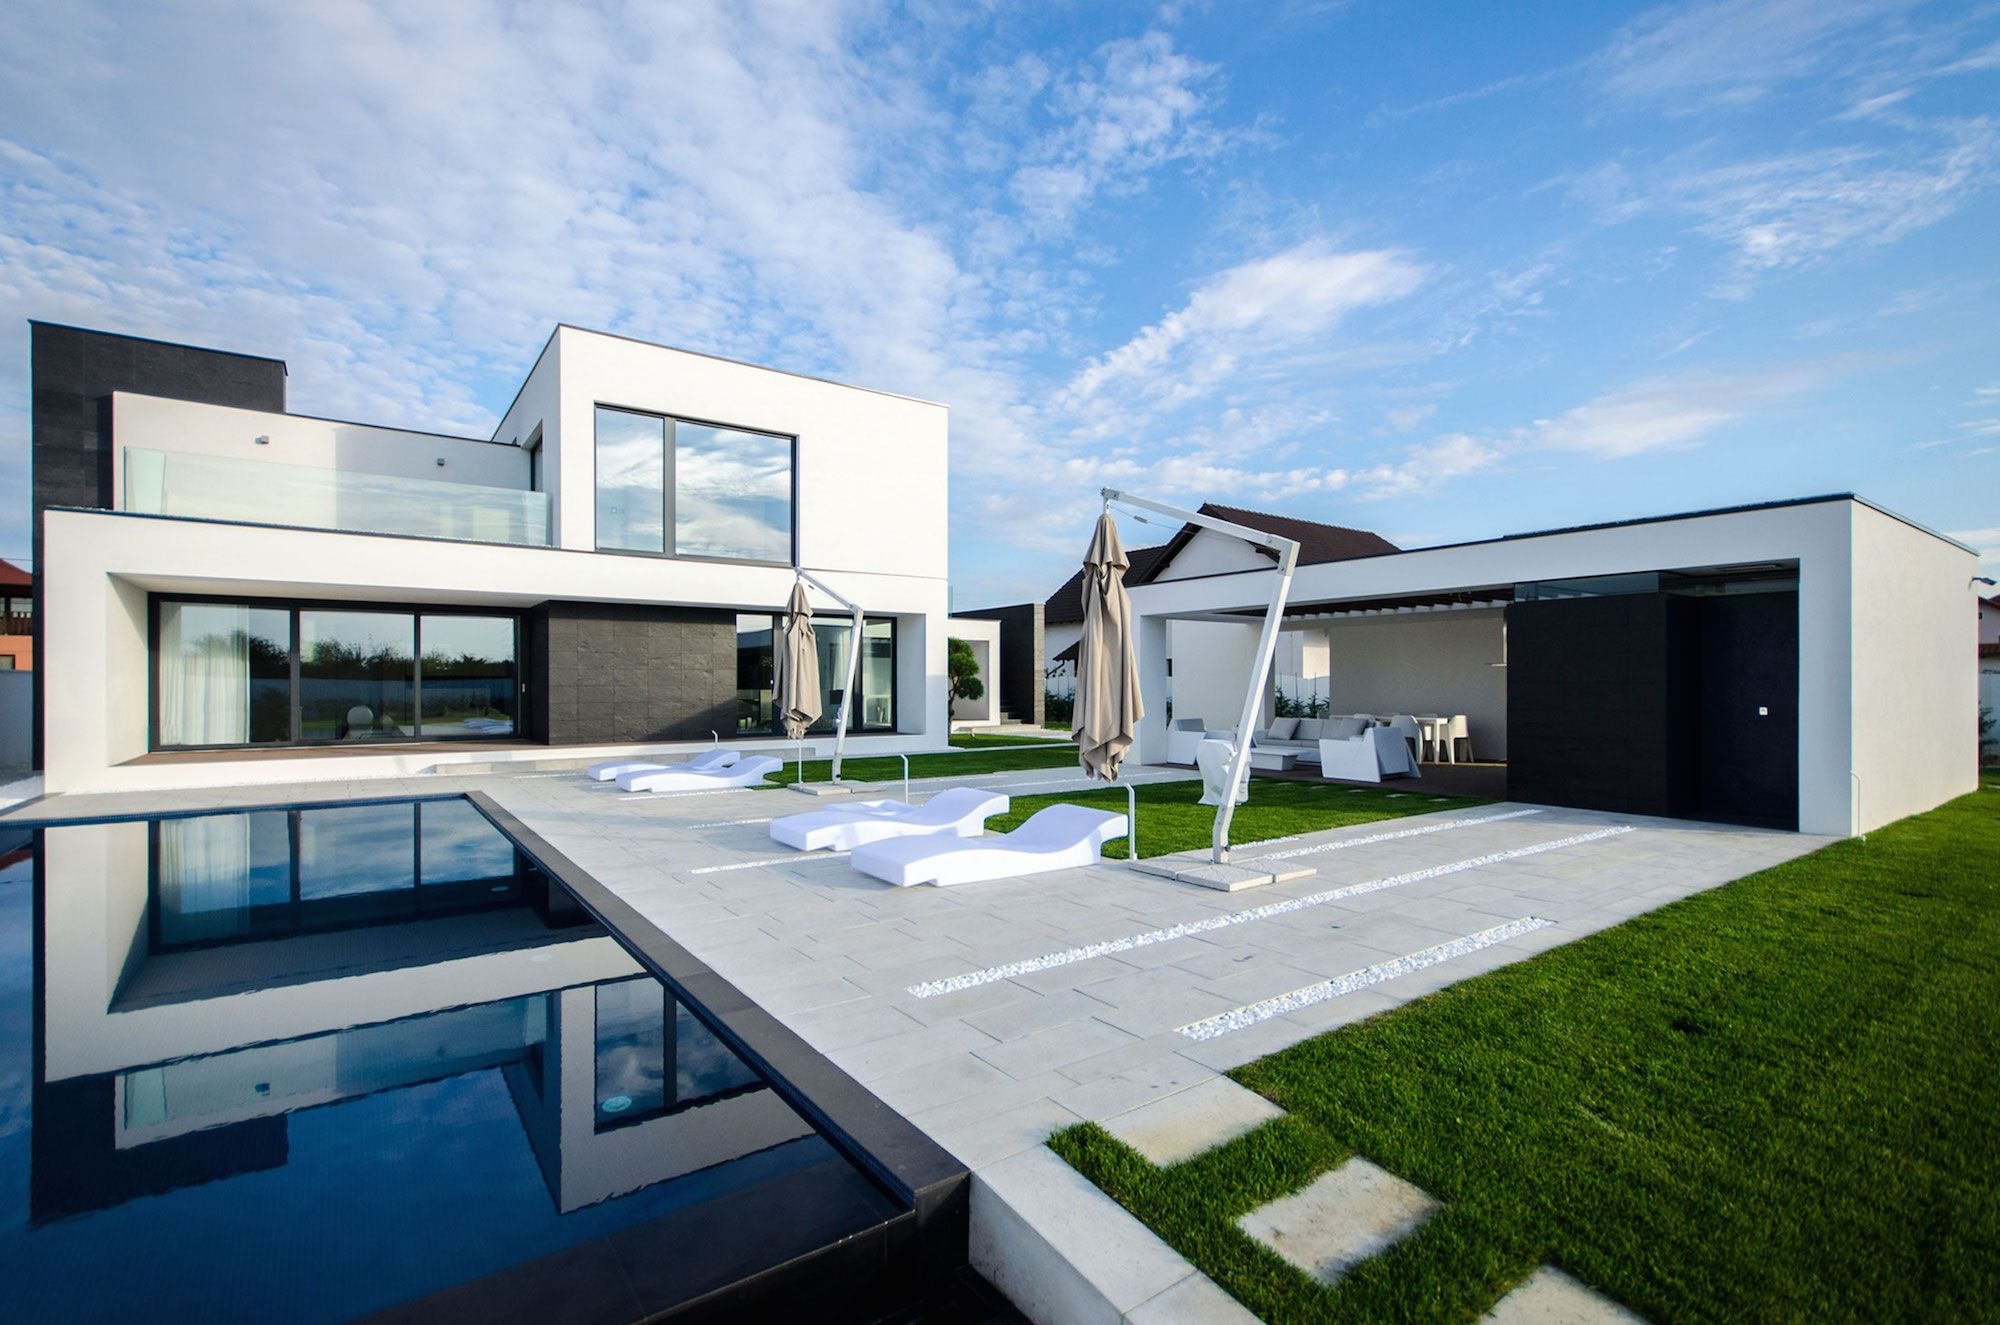 Ultramodern c house in timisoara by parasite studio for Ultra modernes haus